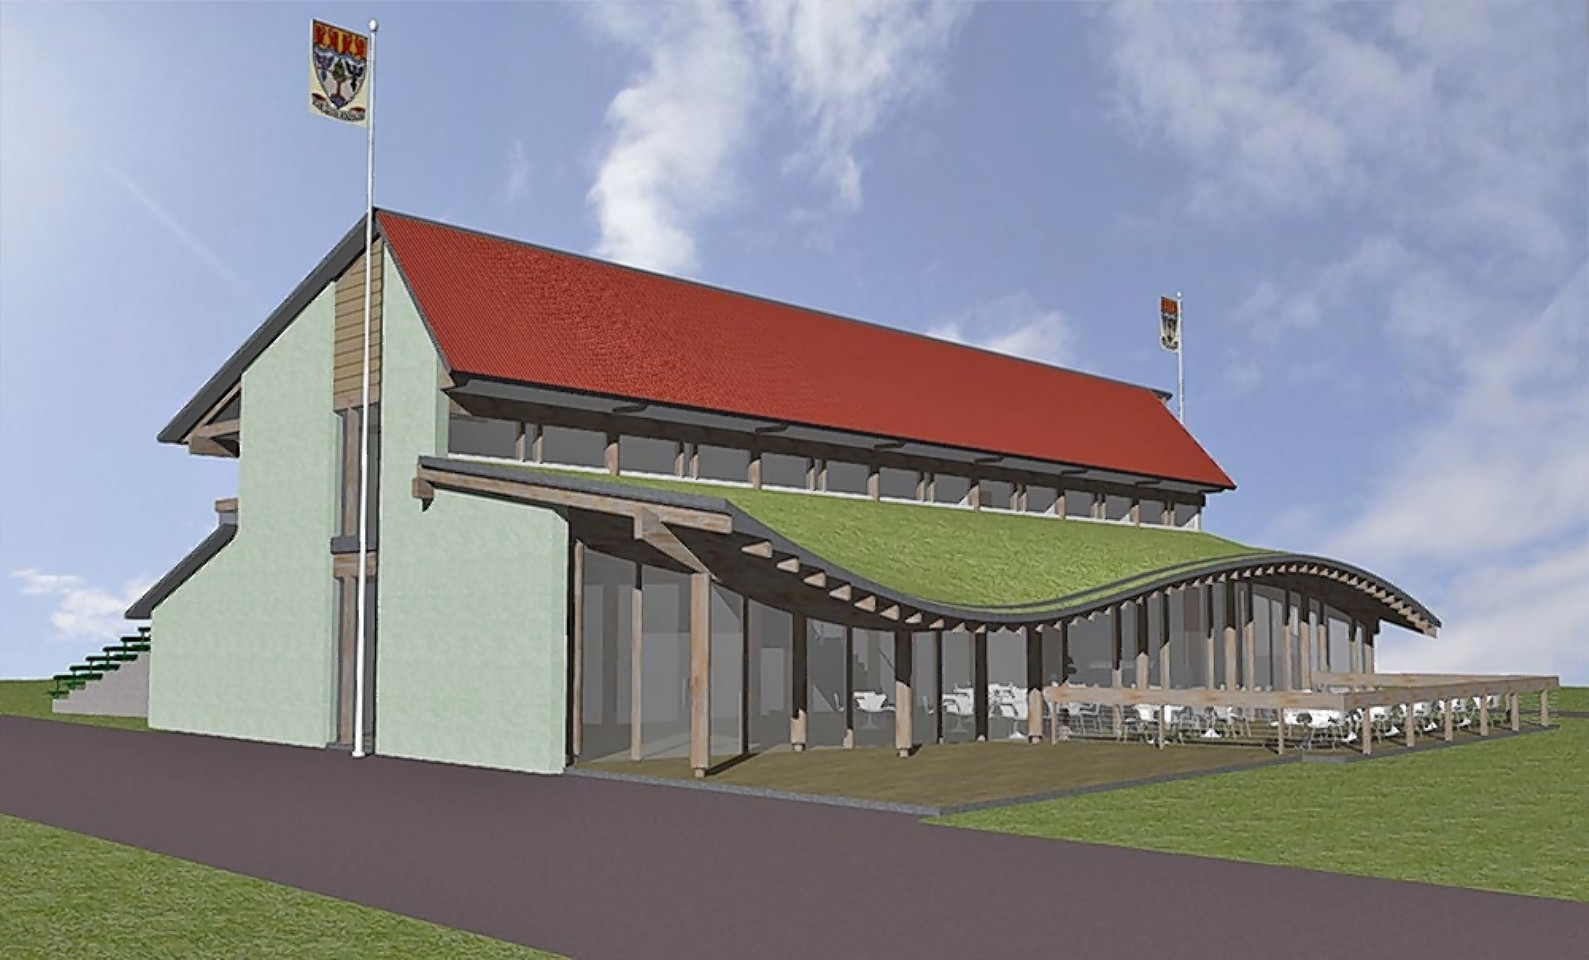 Artist impression of the new Braemar Highland Games Centre